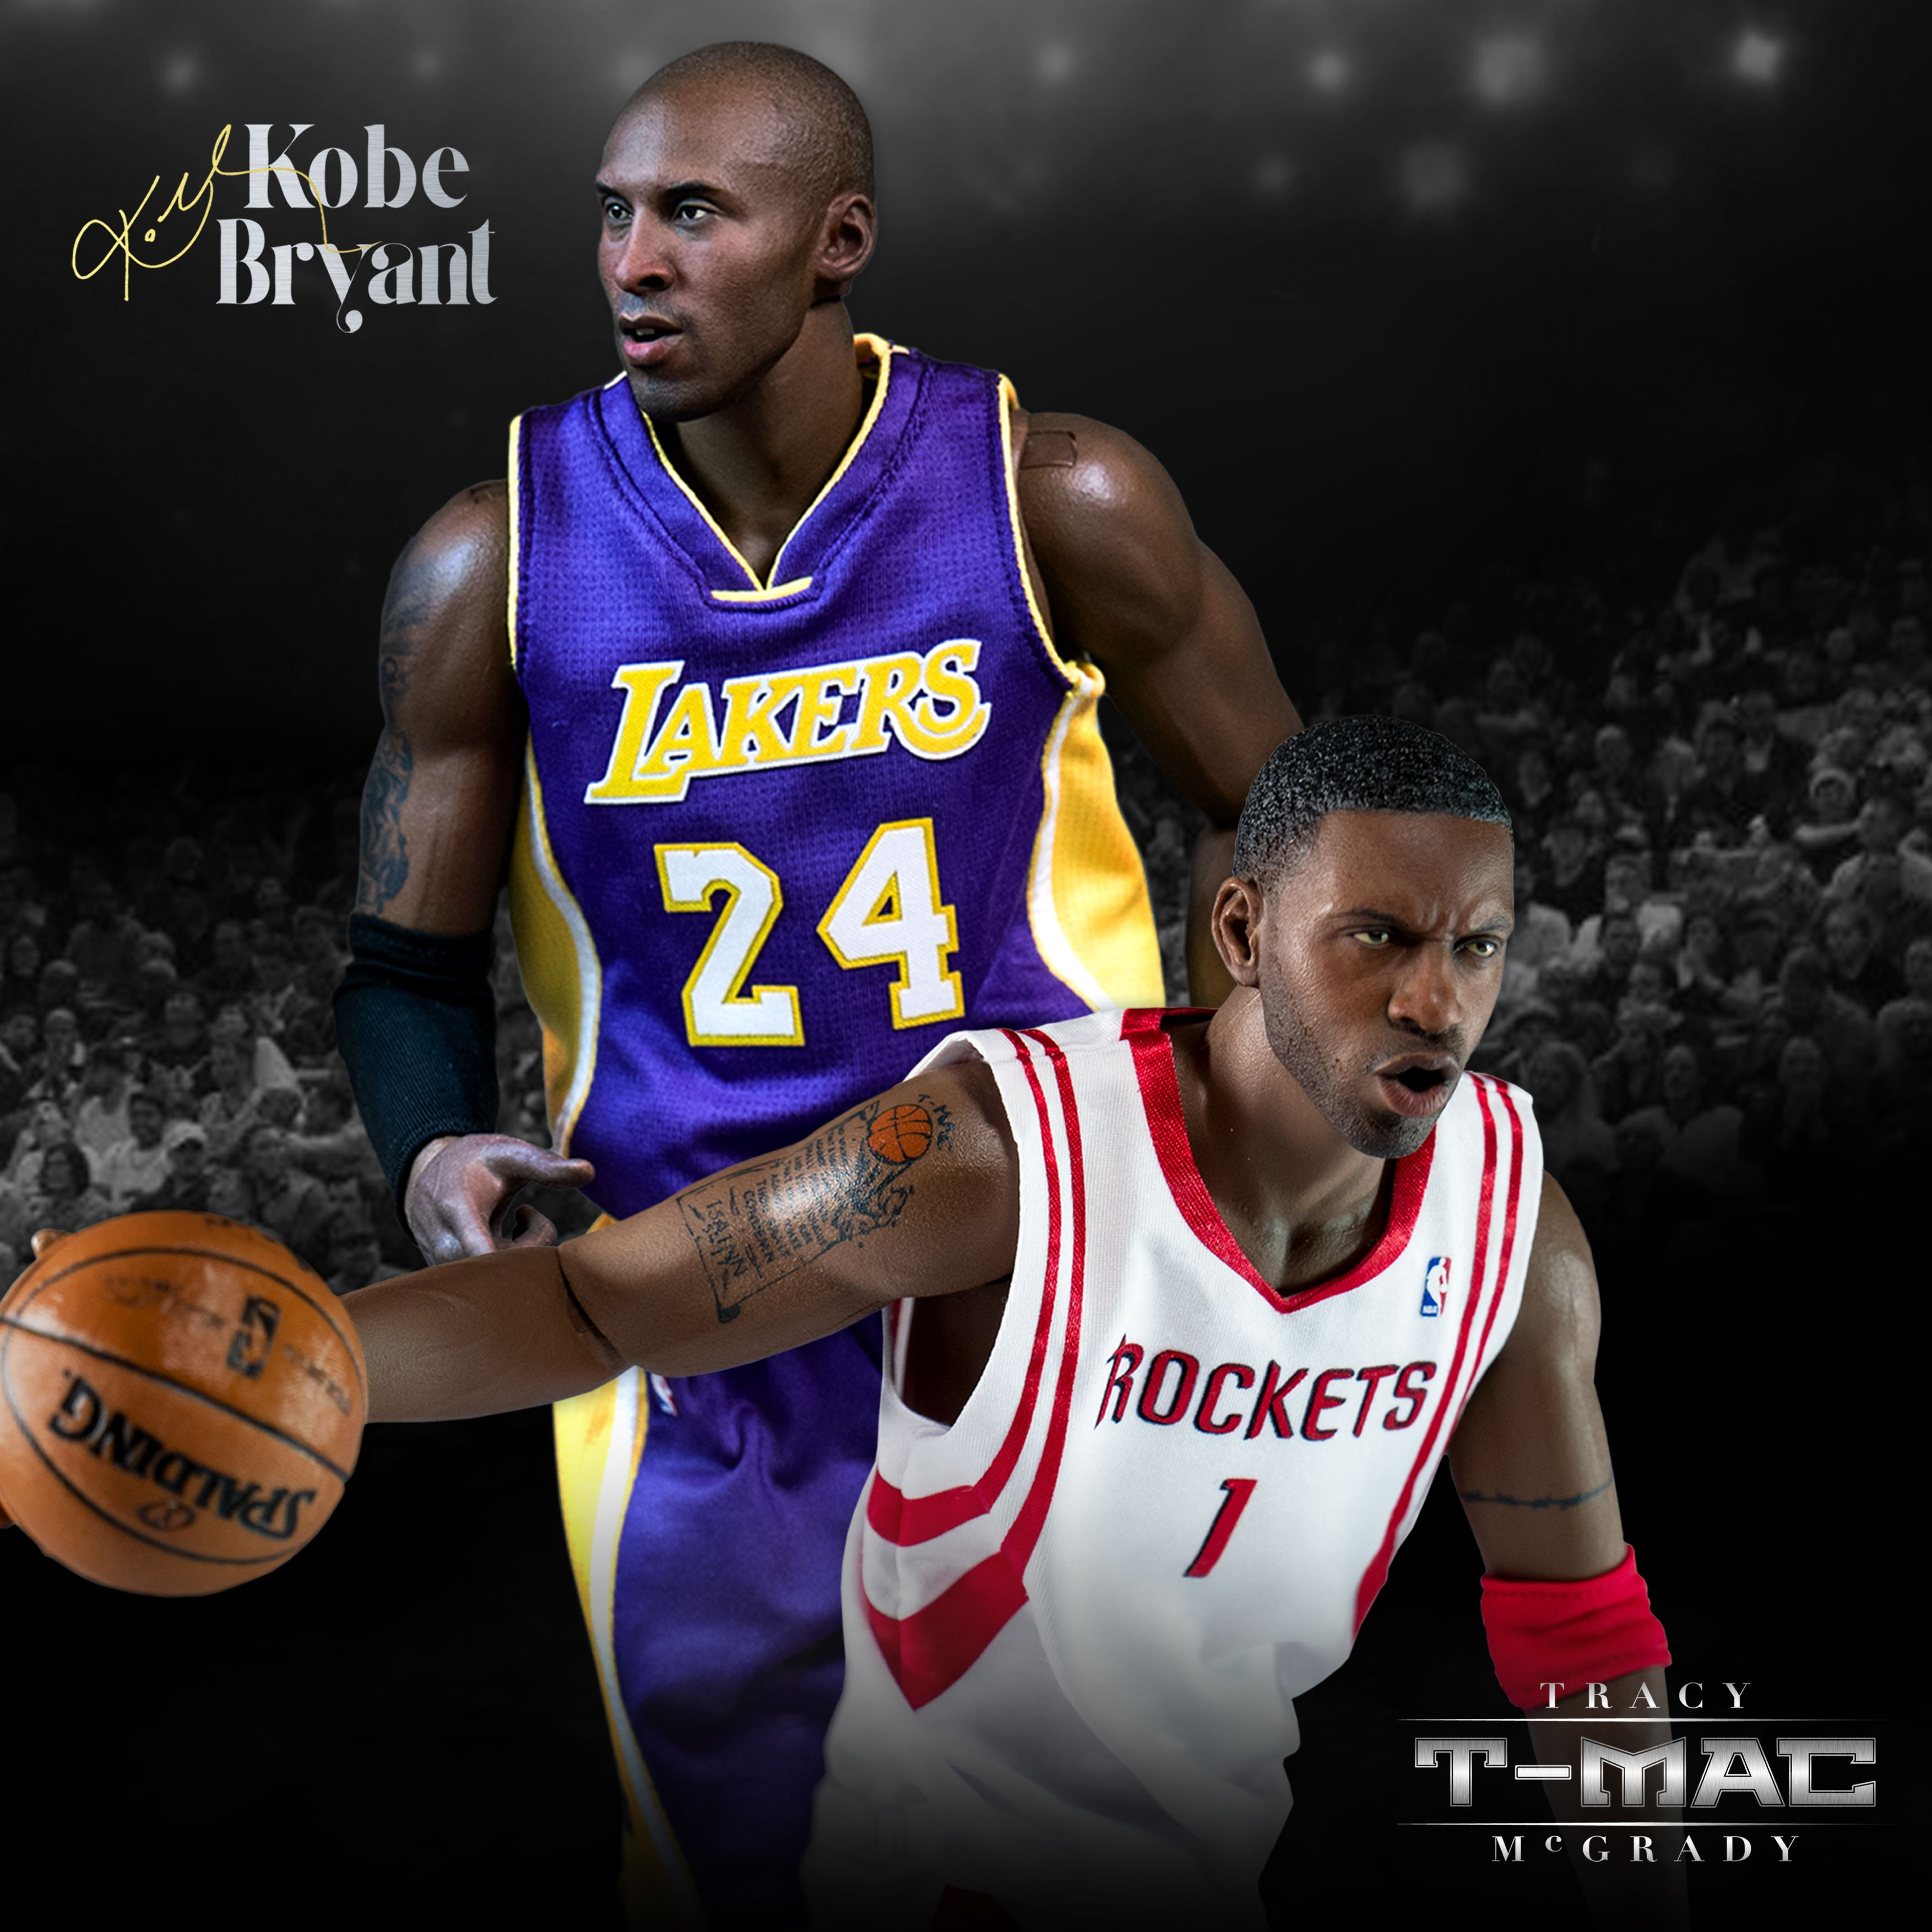 c95fb2566317 www.enterbay.com  nba  nbafigure  ENTERBAY  NBA  figure  figurine   TracyMcgrady  TMac  Kobe  kobebryant  rockets  lakers